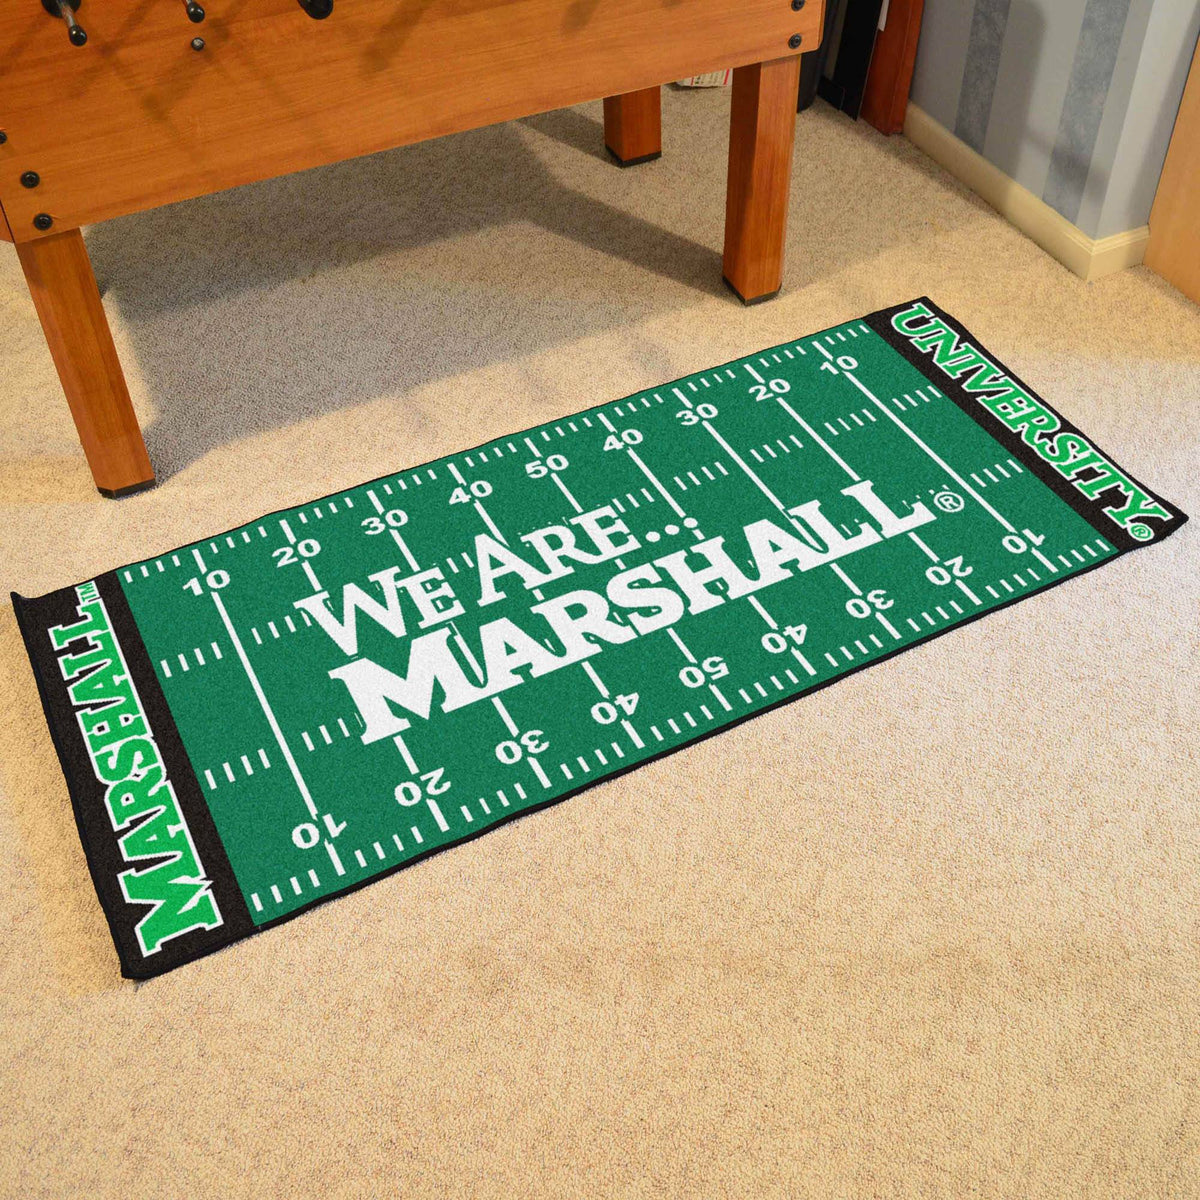 Collegiate - Football Field Runner Collegiate Mats, Rectangular Mats, Football Field Runner, Collegiate, Home Fan Mats Marshall 2